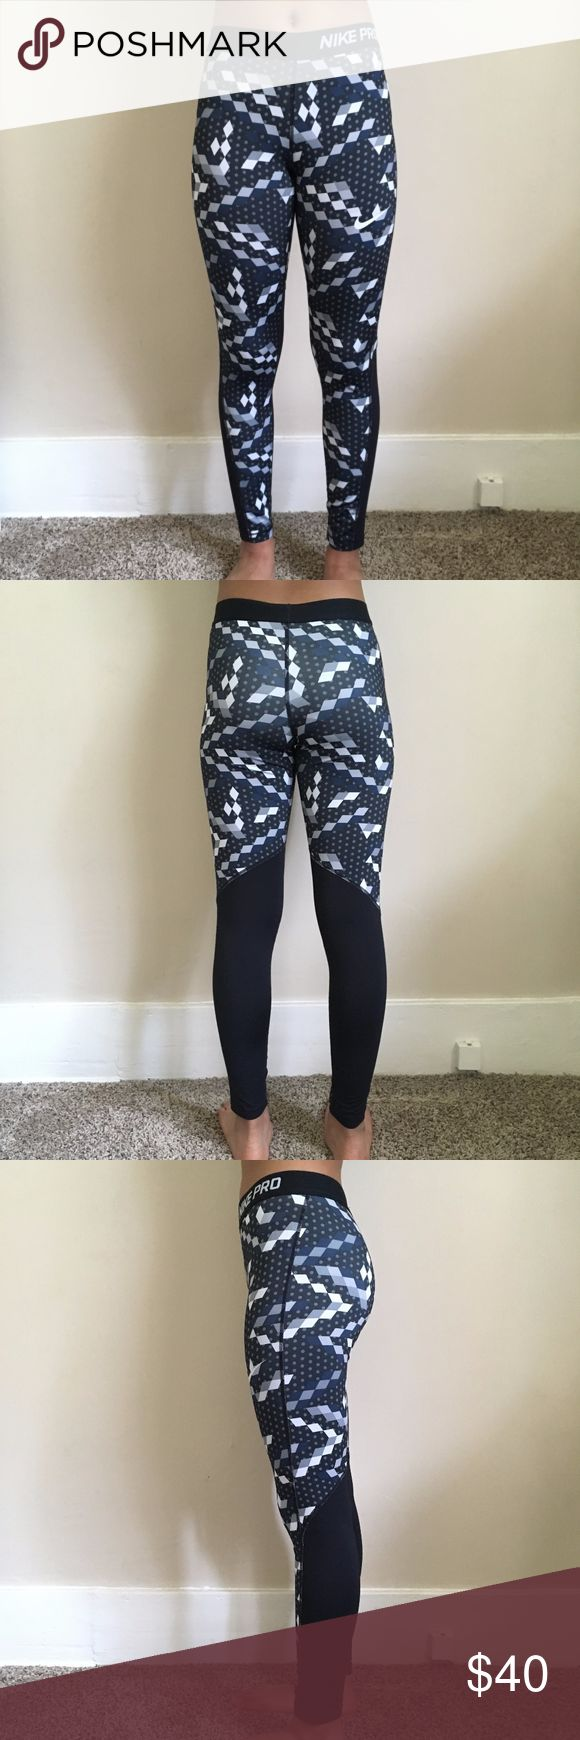 Nike Pro Dri-Fit Graphic Leggings These leggings have only been worn once and are in perfect condition. They are a Girls size XL but would fit a Women's XS-S. Nike Pants Leggings